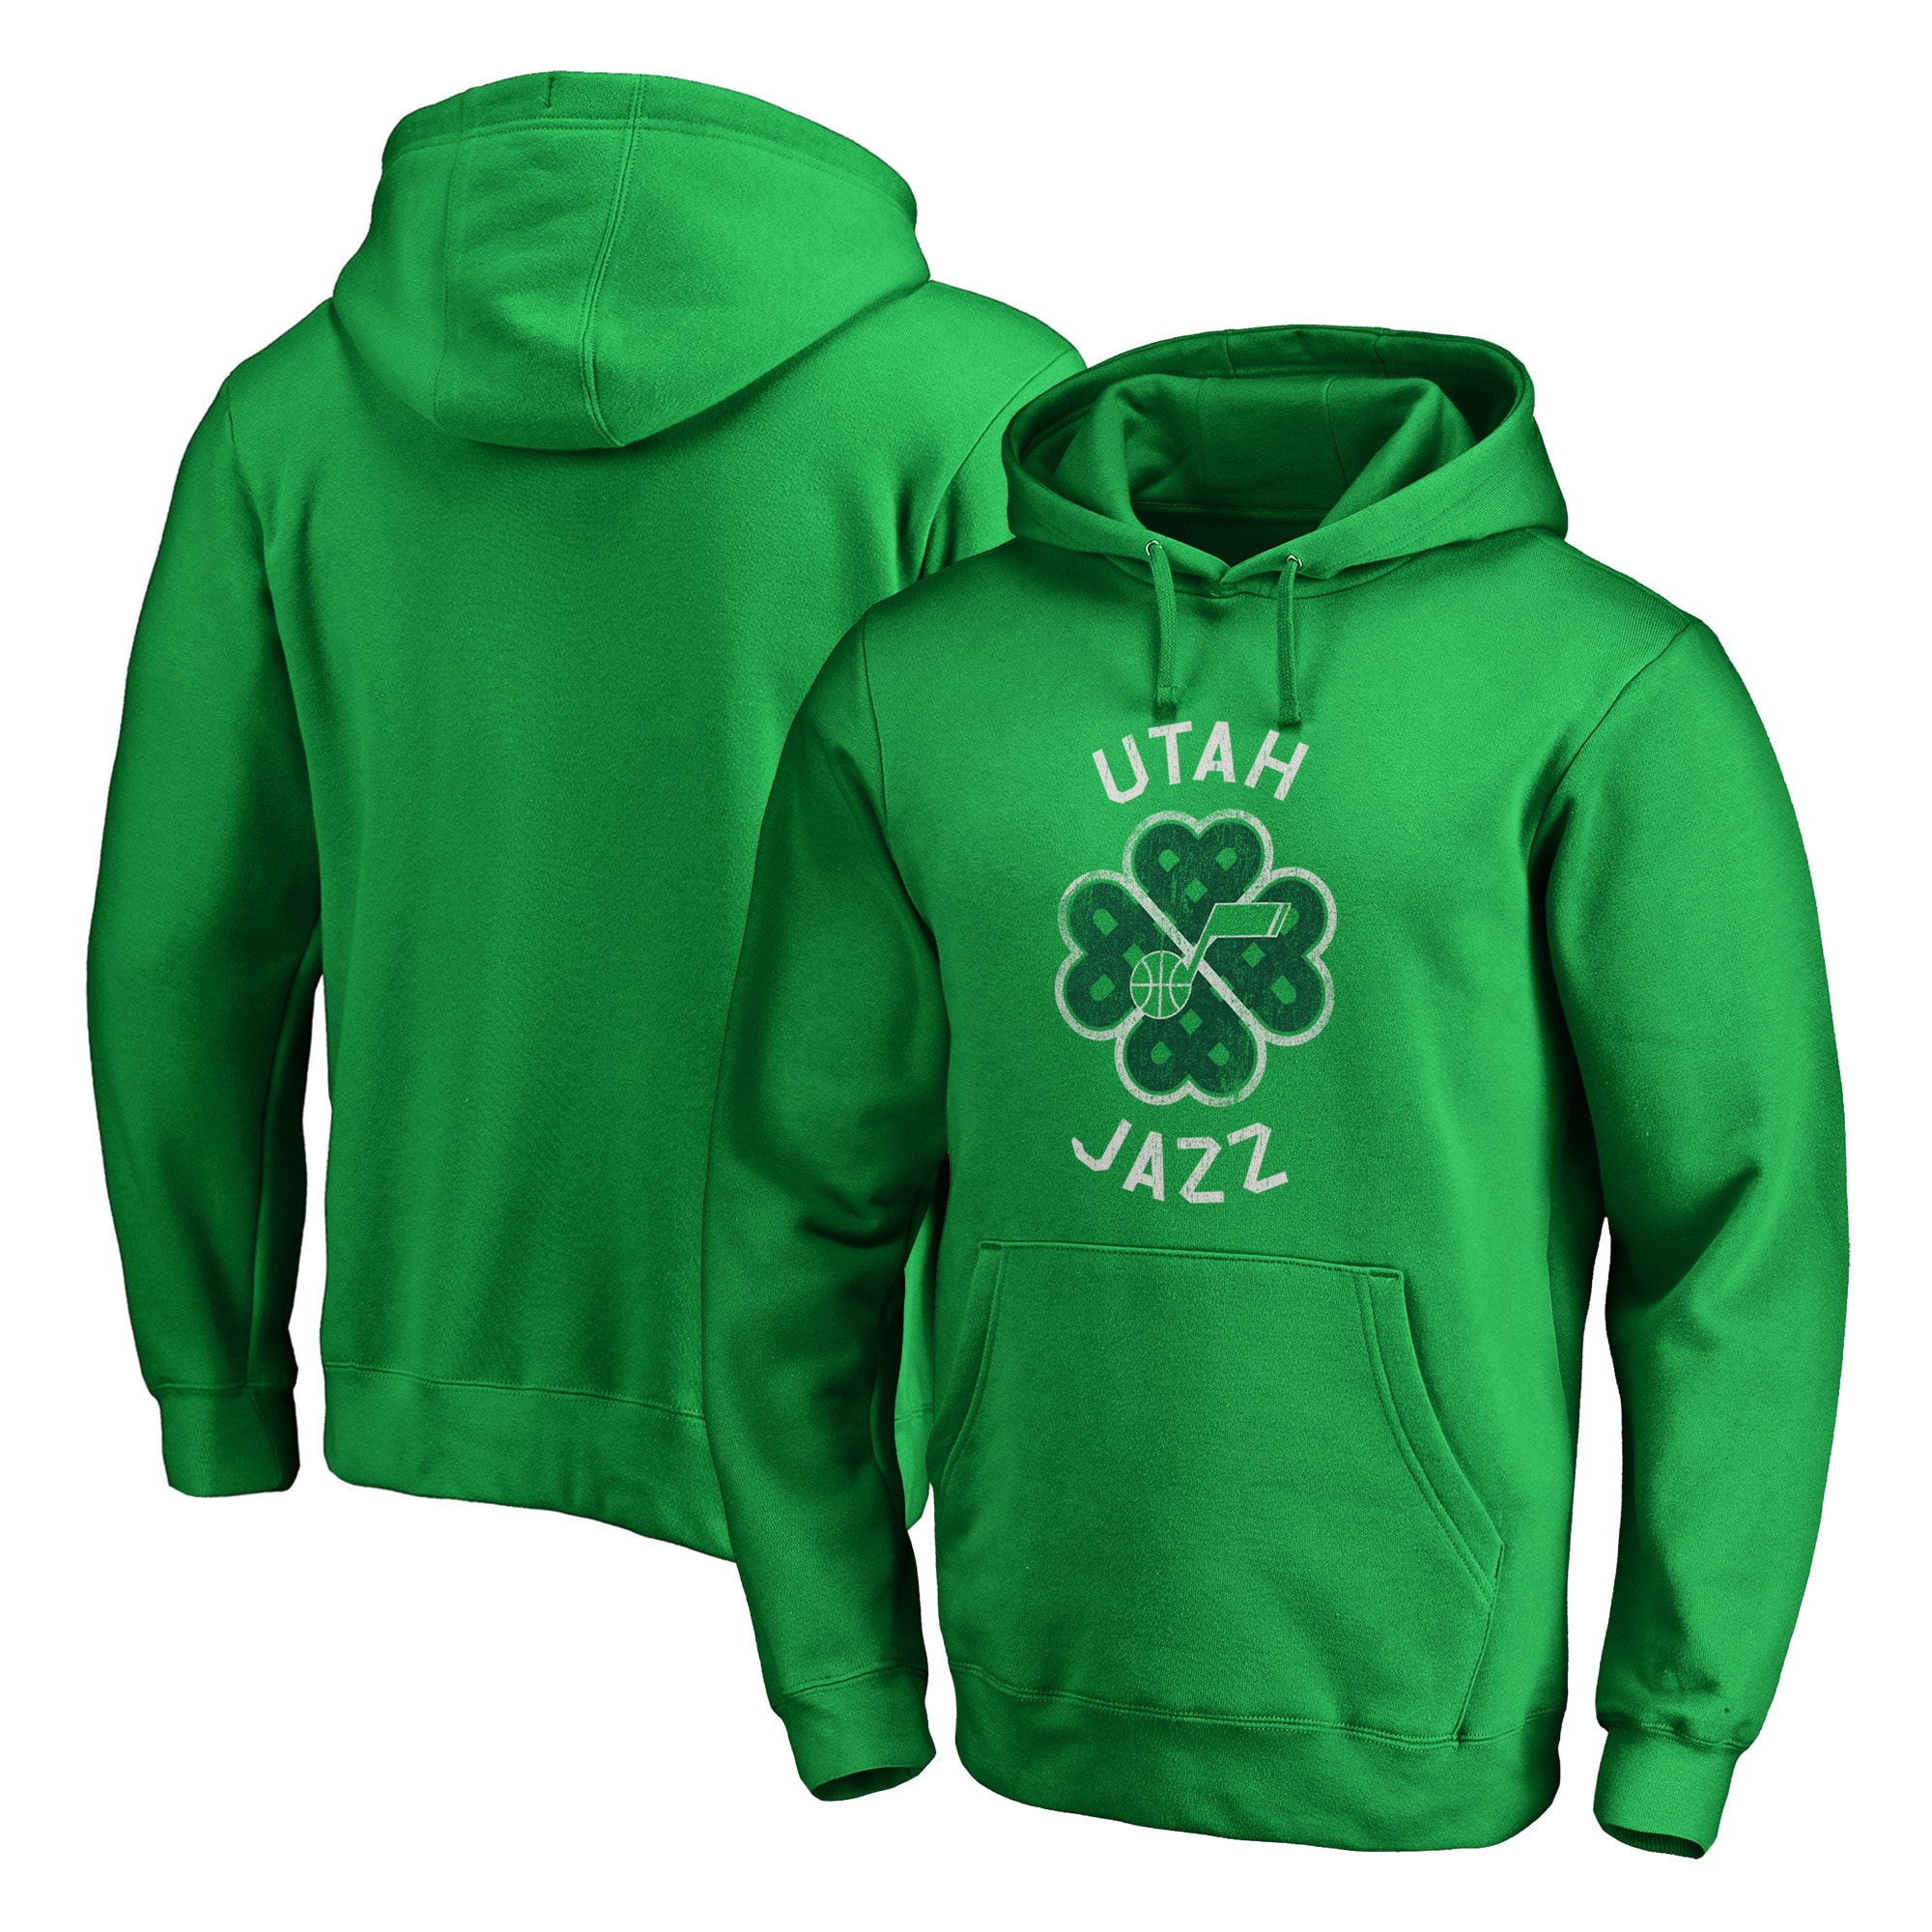 Utah Jazz Fanatics Branded St. Patrick's Day Luck Tradition Pullover Hoodie - Kelly Green